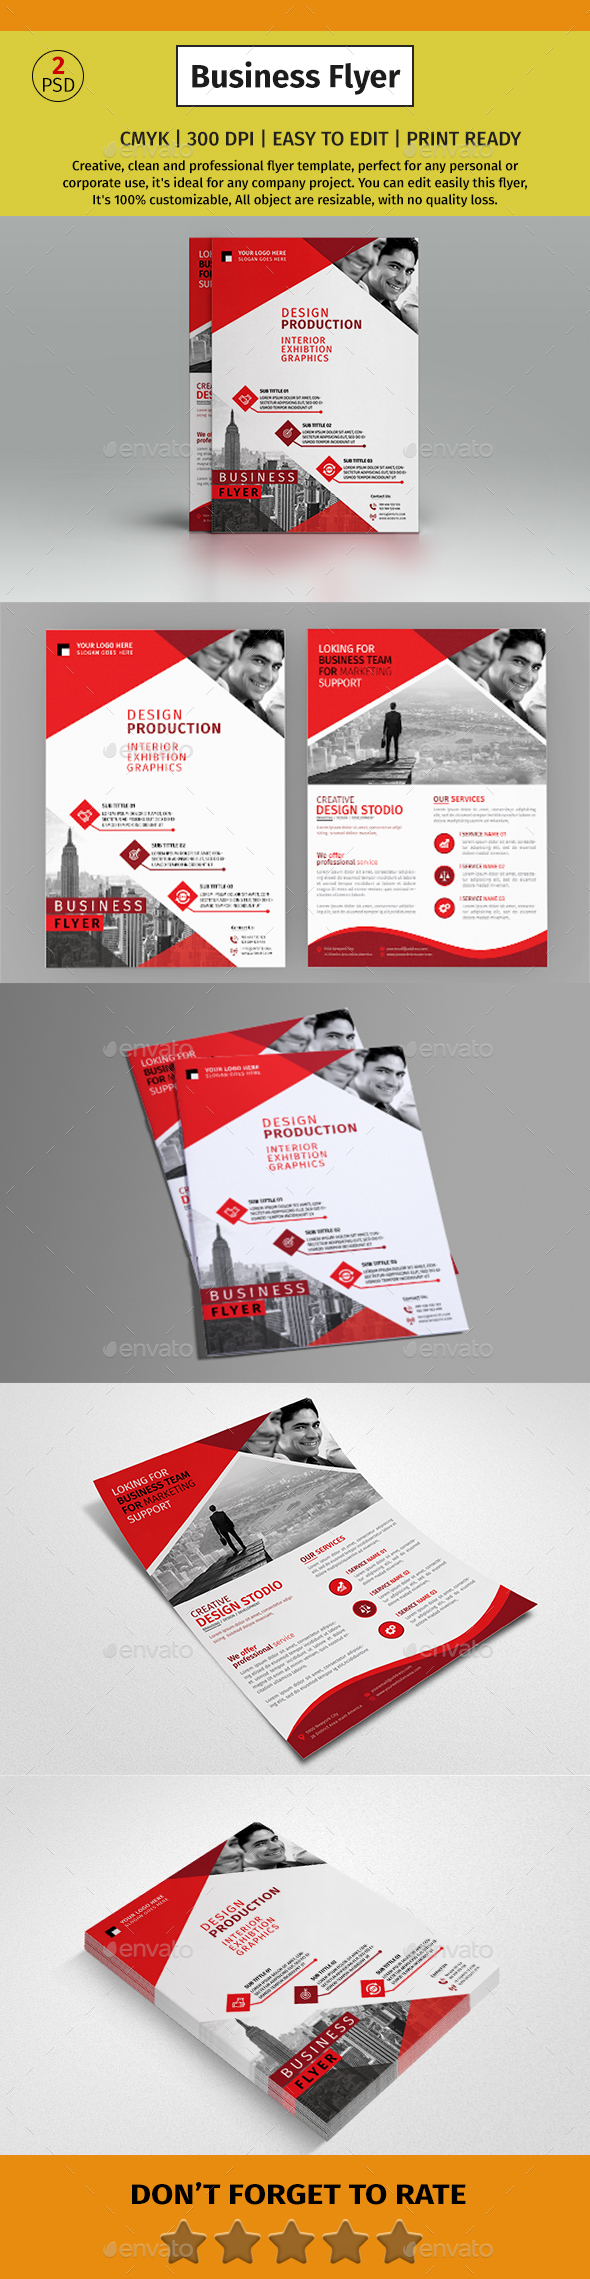 A4 Corporate Business Flyer #87 - Corporate Flyers